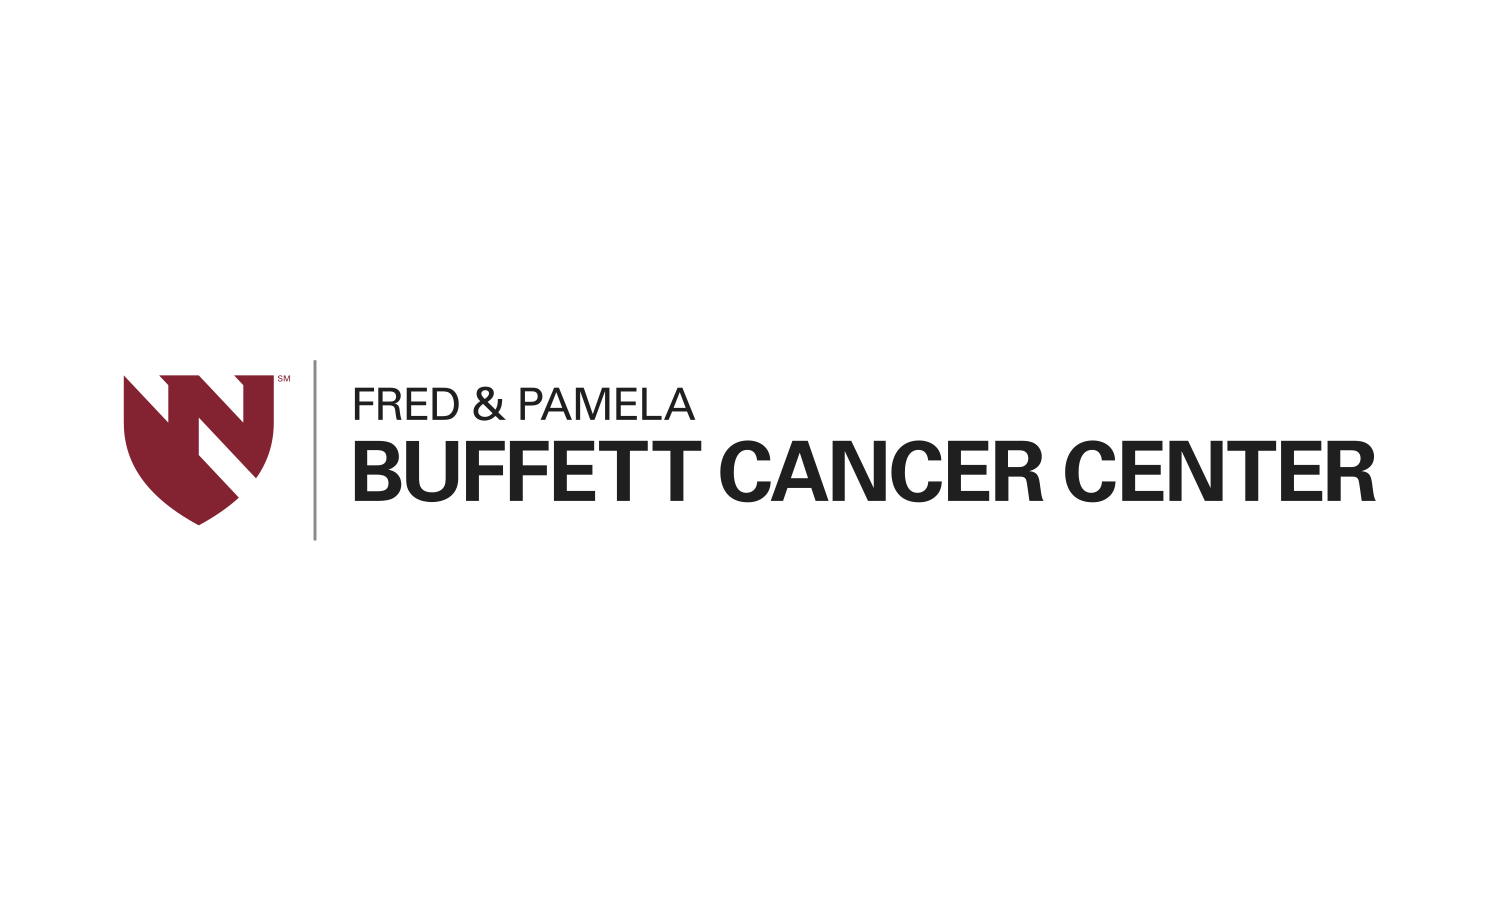 """fred & pamela BUFFETT CANCER CENTER - OMAHA - Omaha, NE: """"The mission of the Fred and Pamela Buffett Cancer Center is to understand, prevent and cure cancer in Nebraska through premier educational programs, innovative research, the highest quality patient care, and outreach to underserved populations."""""""